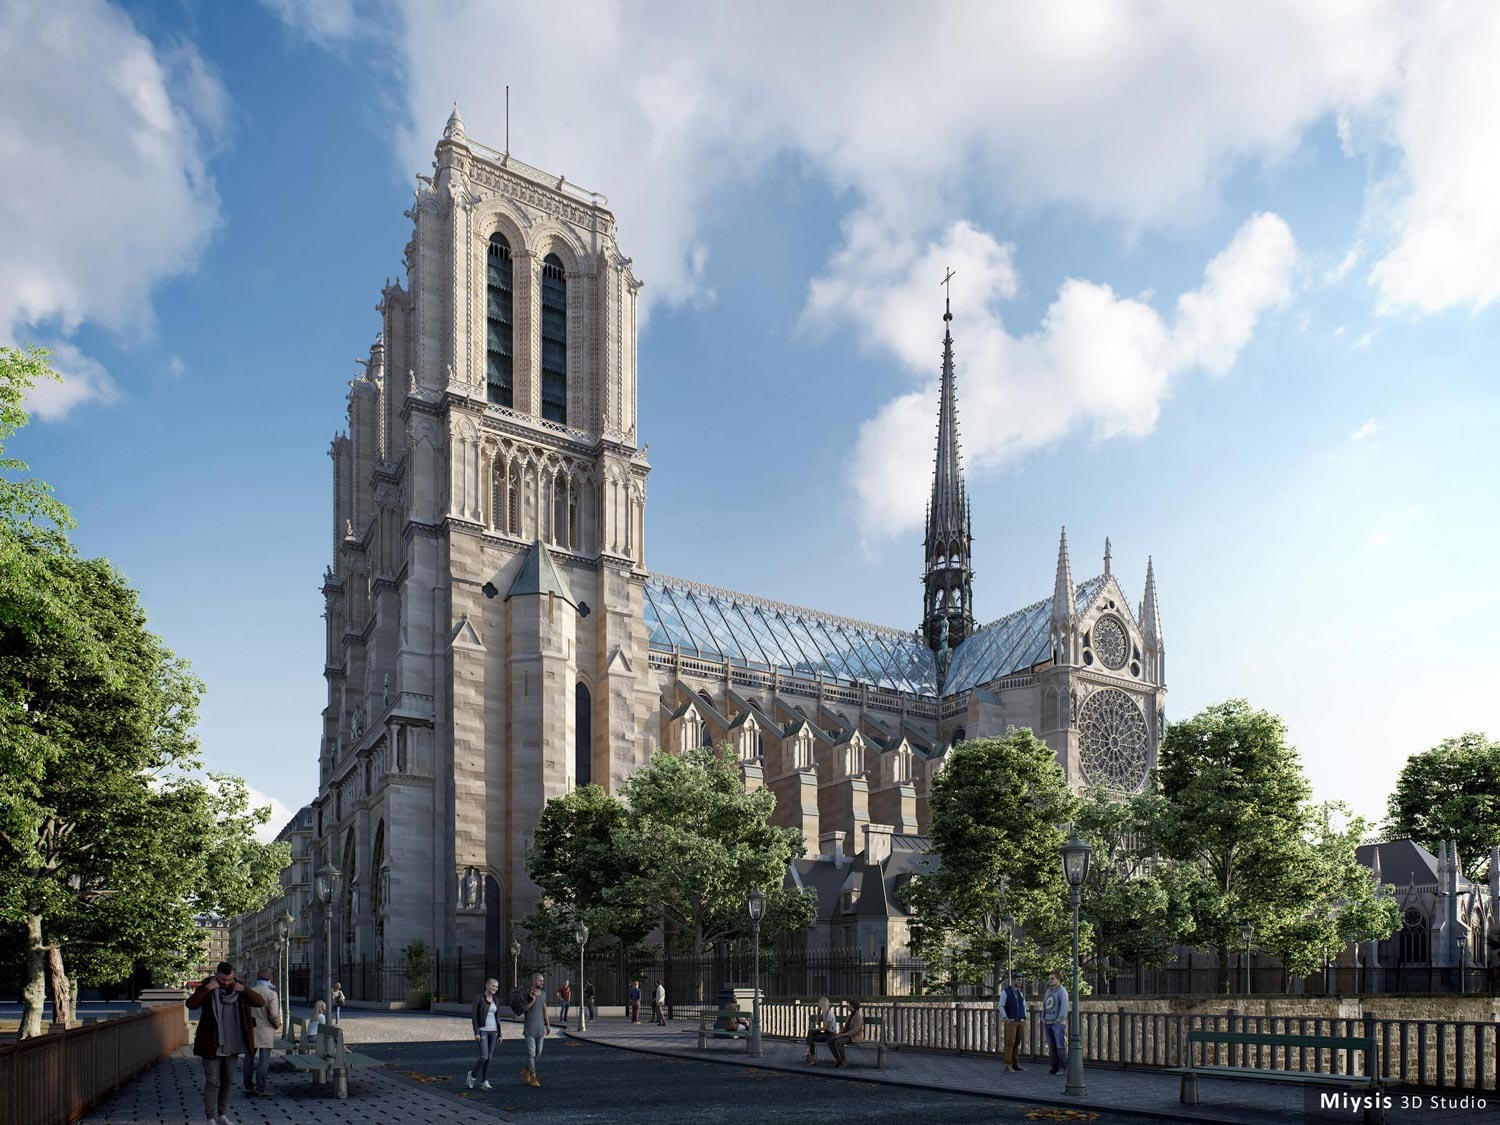 miysis_3d_notre-dame_de_paris_day_view_01-1920@75.jpg